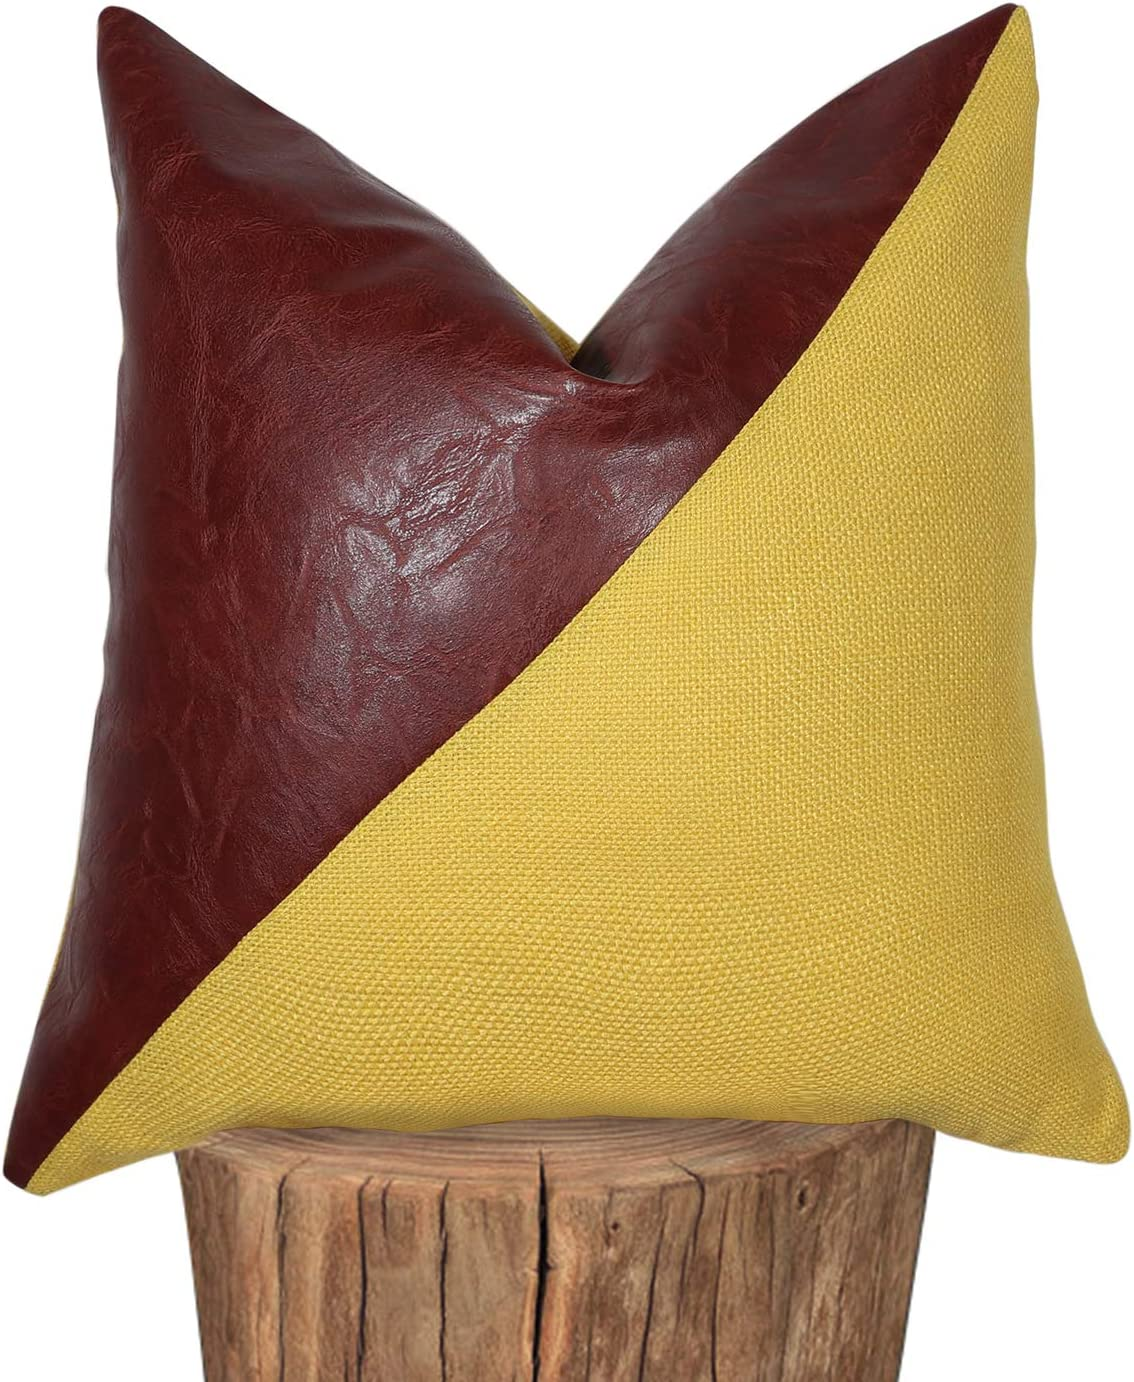 Hckot Farmhouse Cotton Decorative Throw Pillow Covers Faux Leather Accent Pillow 18x18 inch Boho Modern Decor Pillow Case for Couch (Yellow)